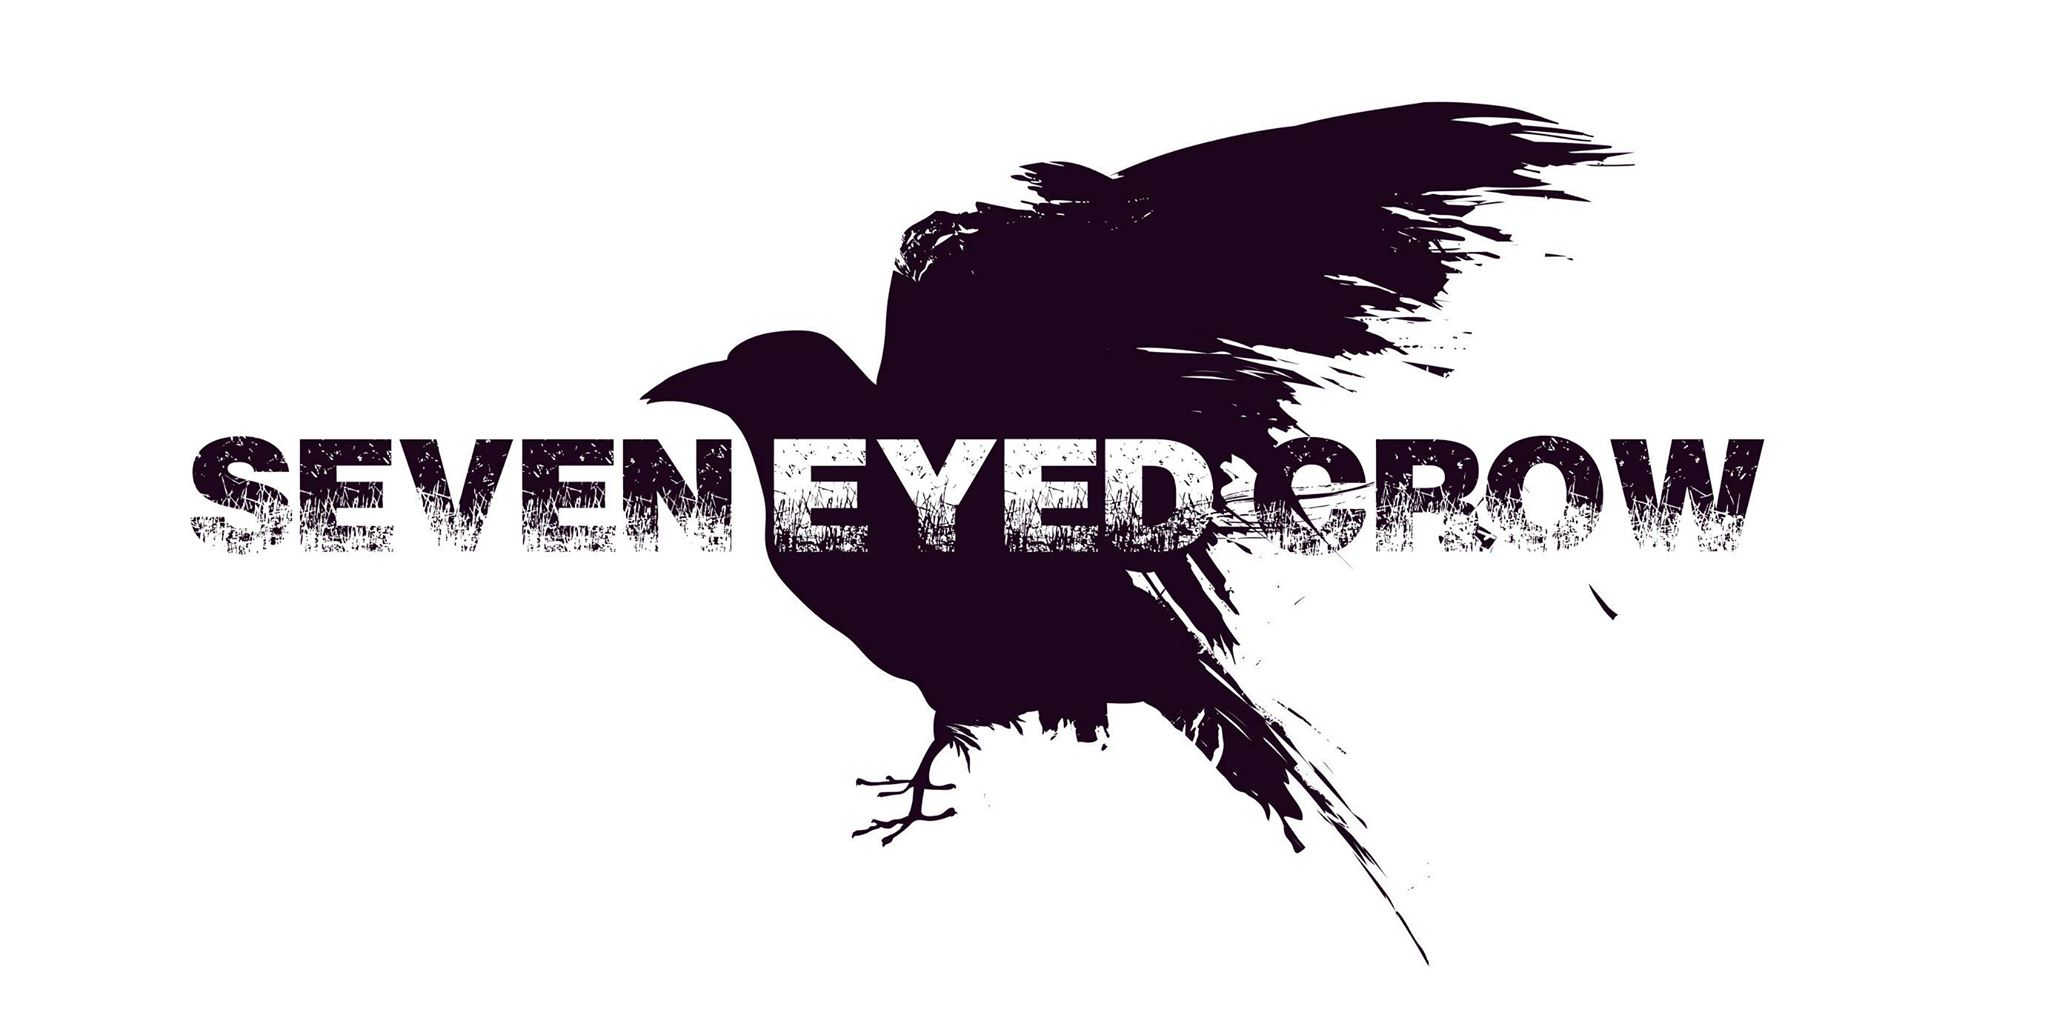 Seven Eyed Crow